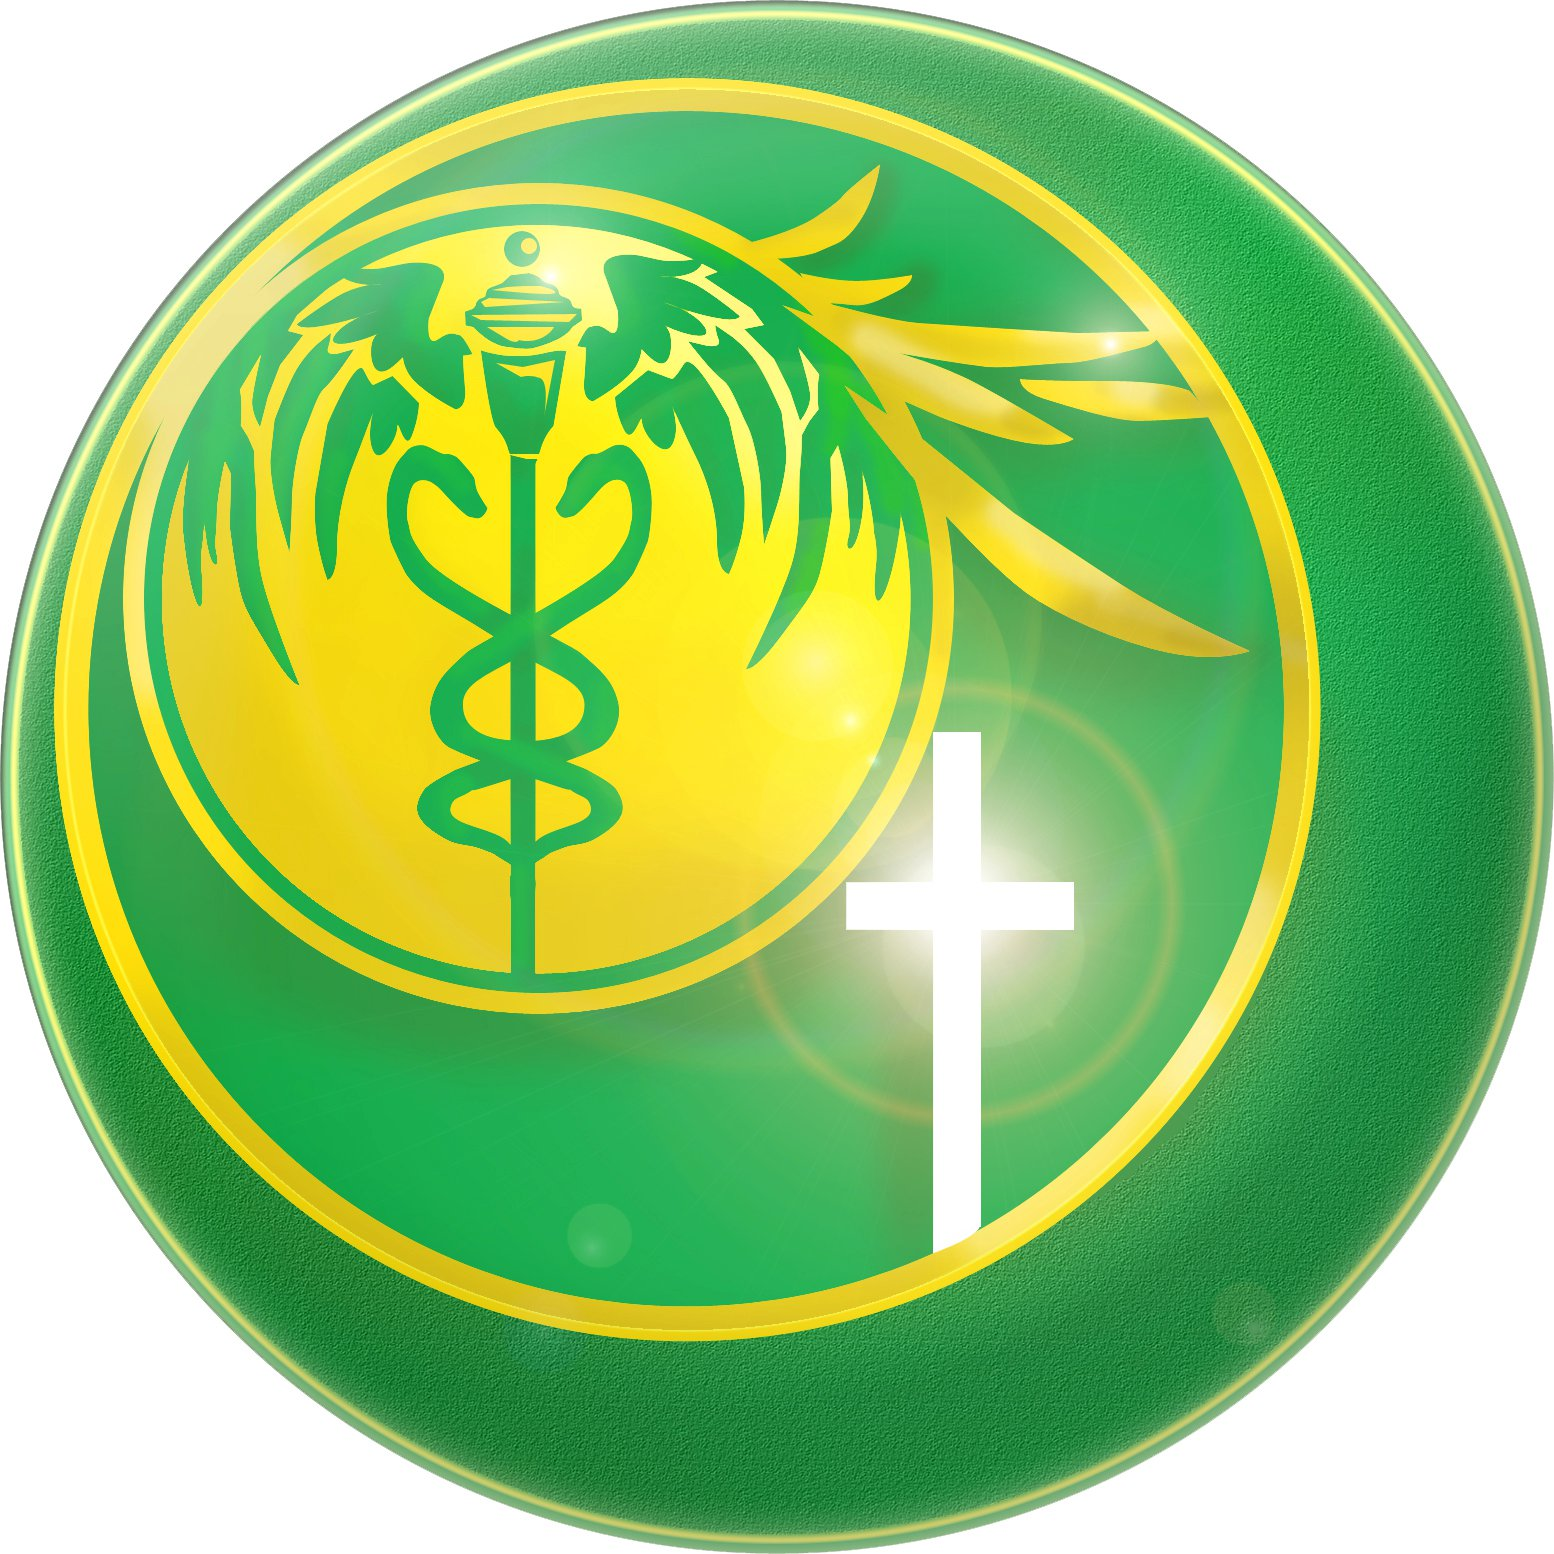 Brokenshire Integrated Health Ministries Incorporated 1 profile